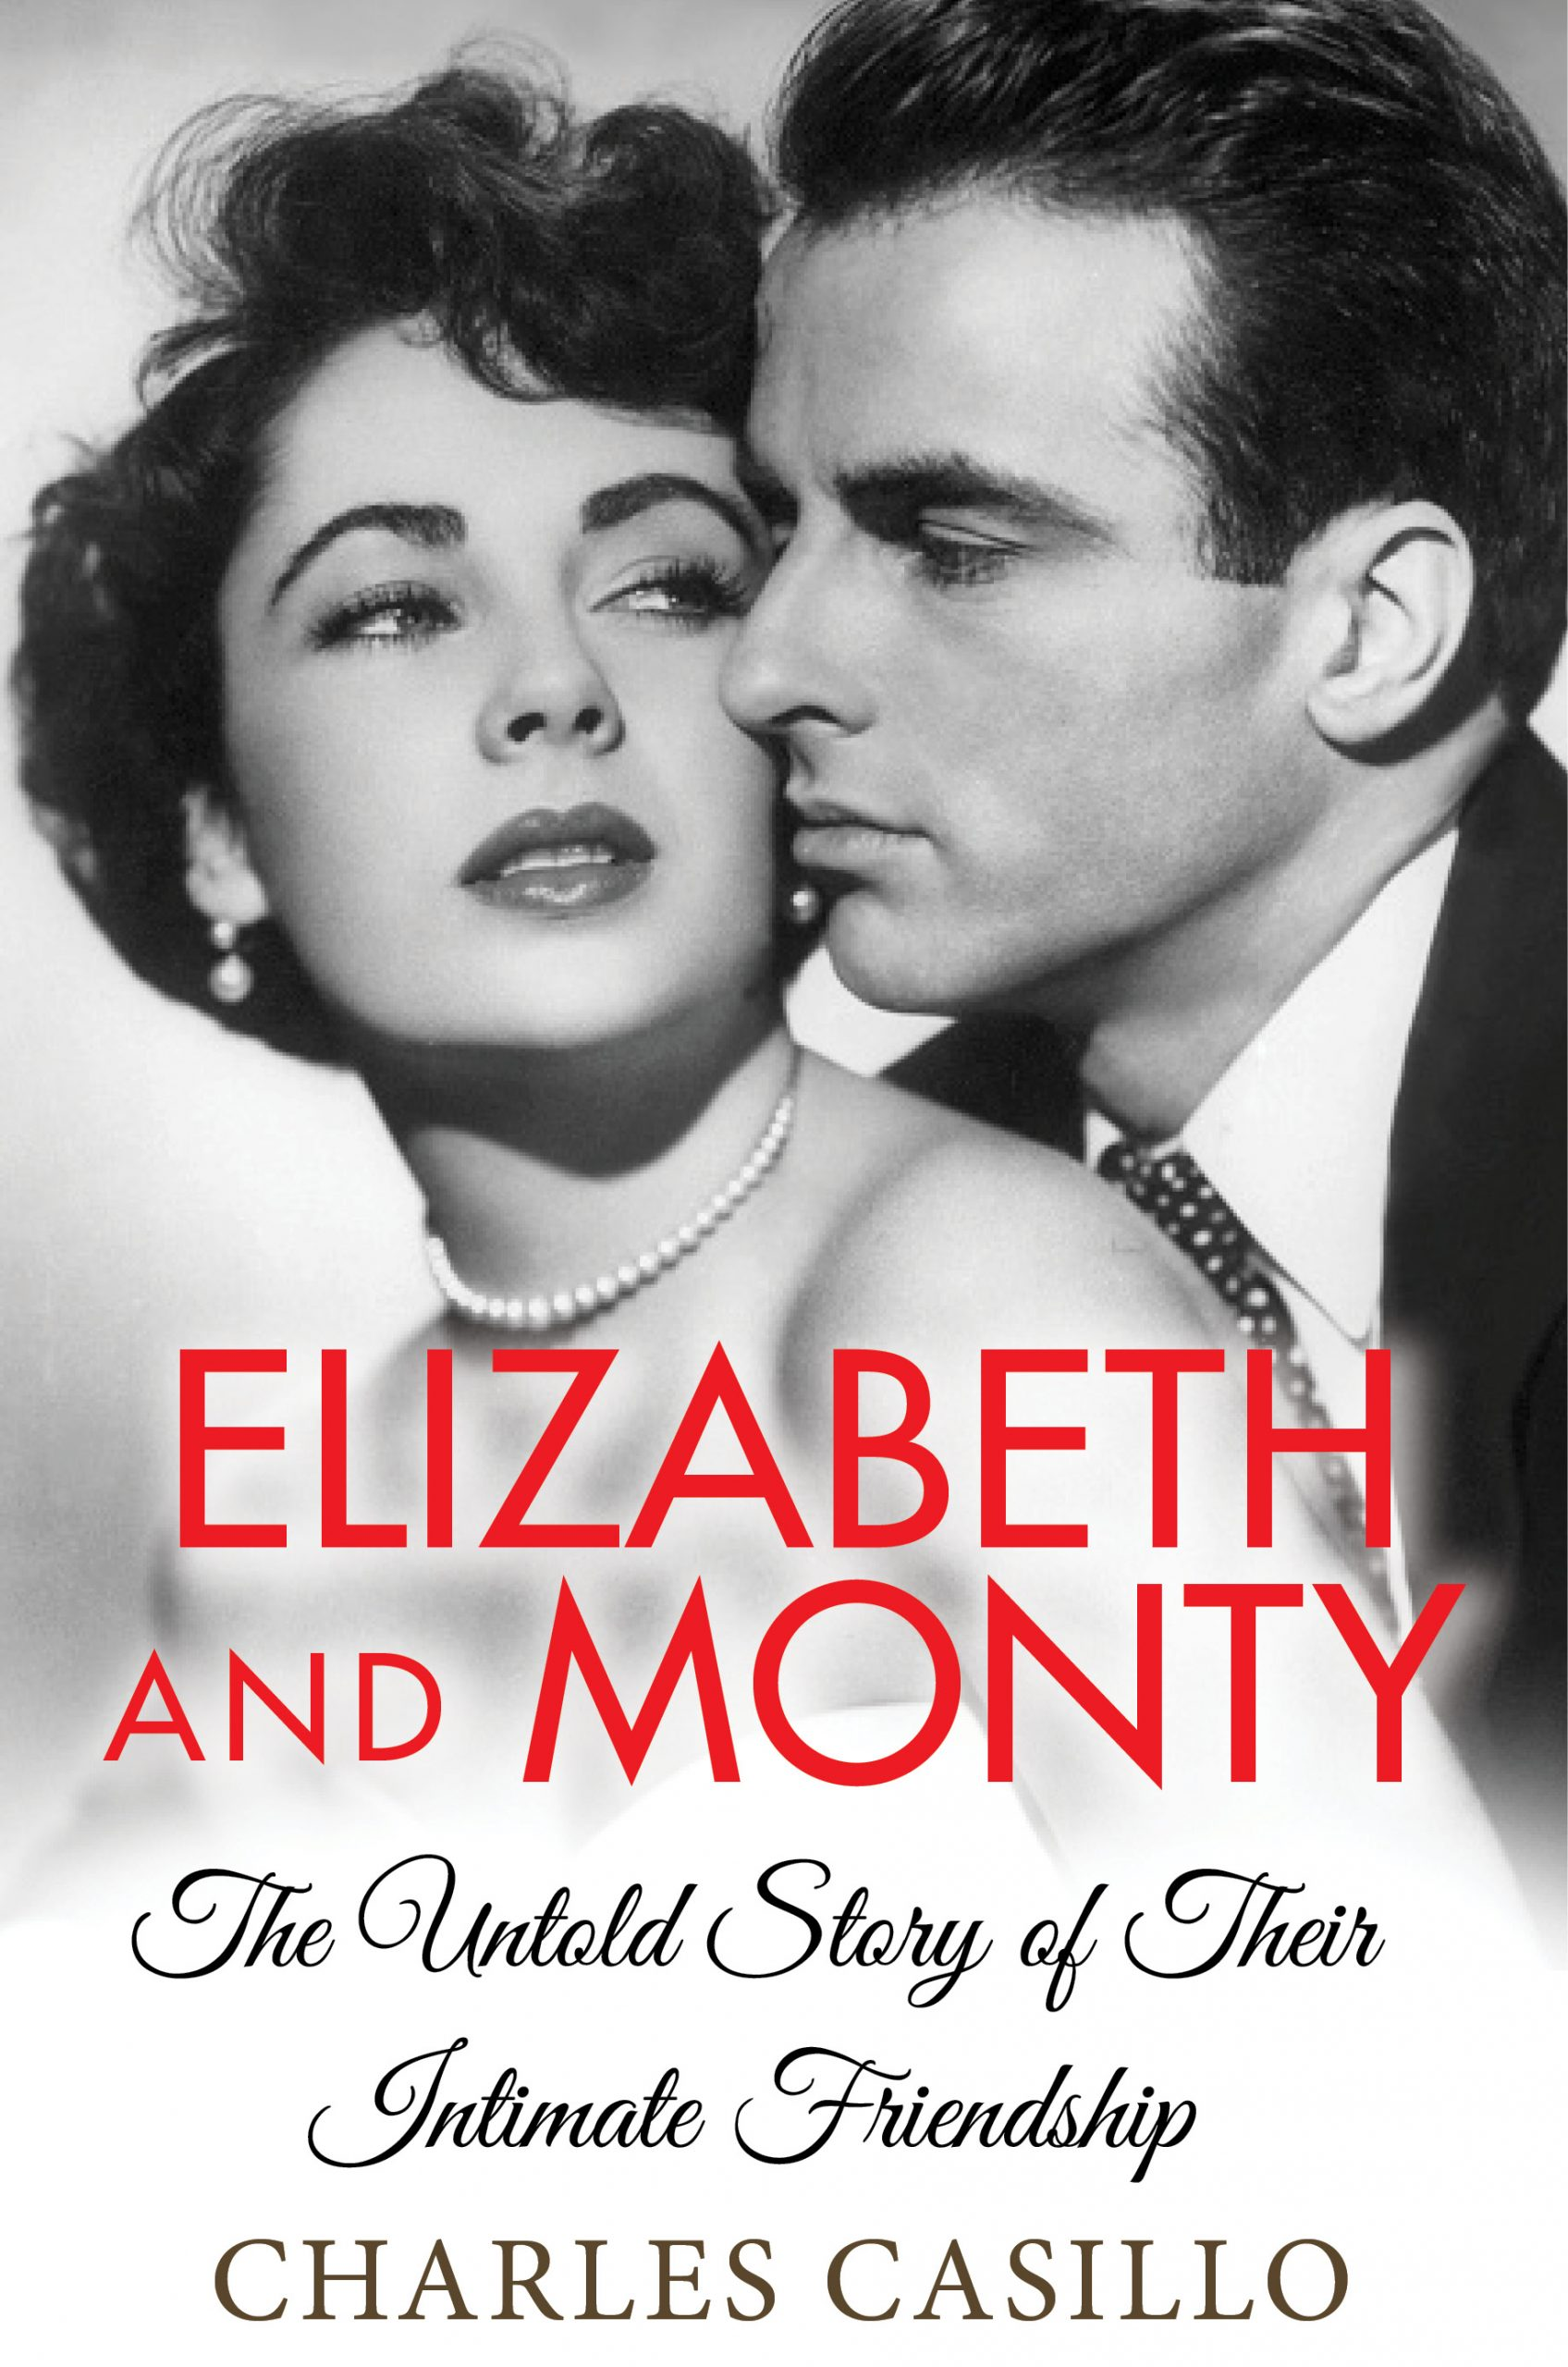 Elizabeth and Monty: The Untold Story of Their Intimate Friendship by Charles Casillo